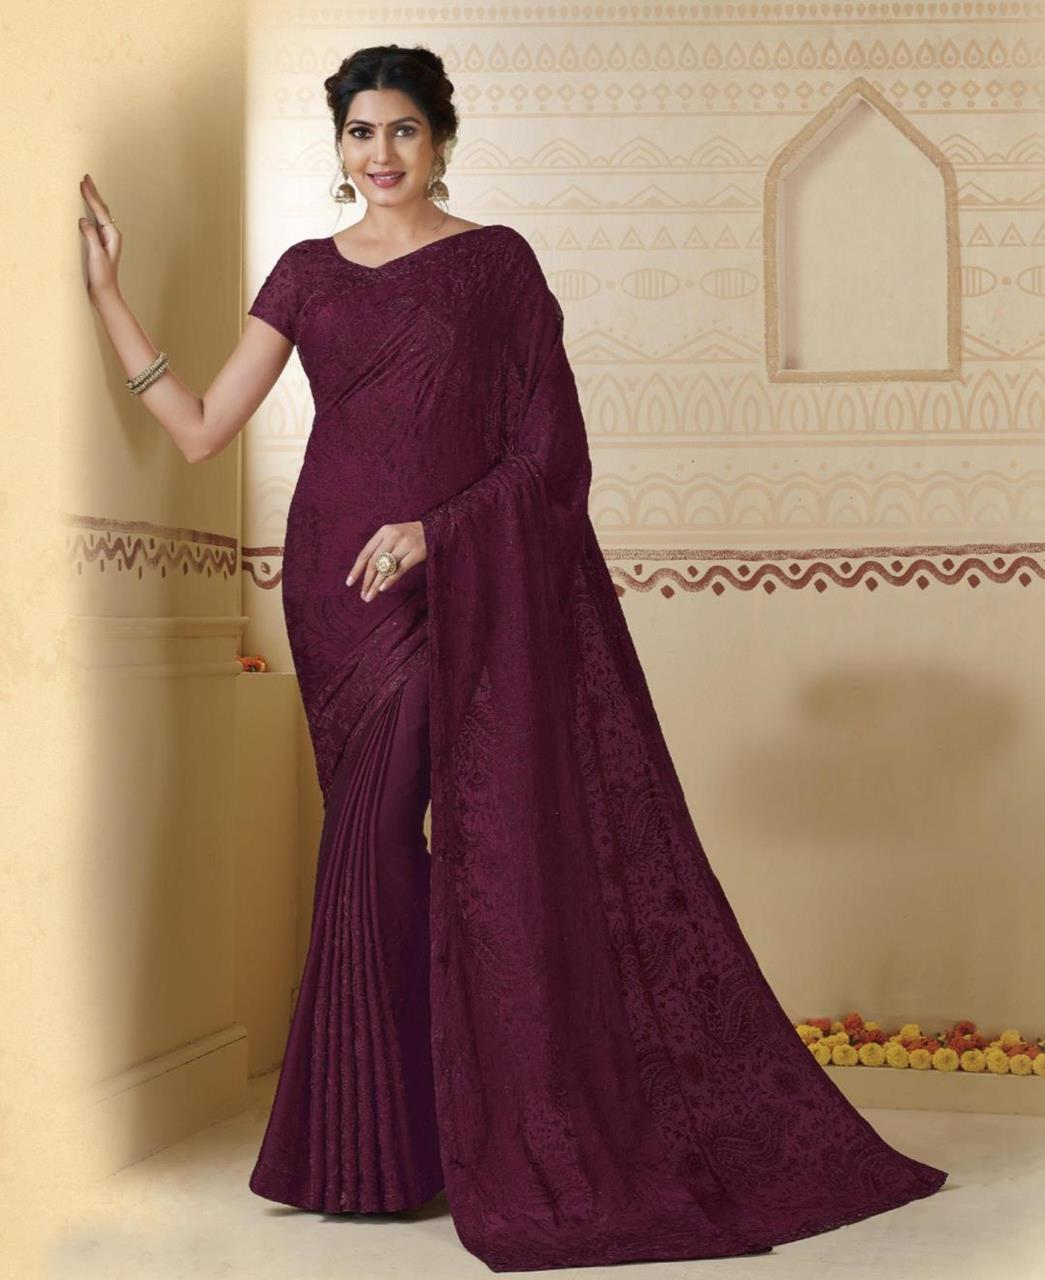 Embroidered Chiffon Saree in Wine